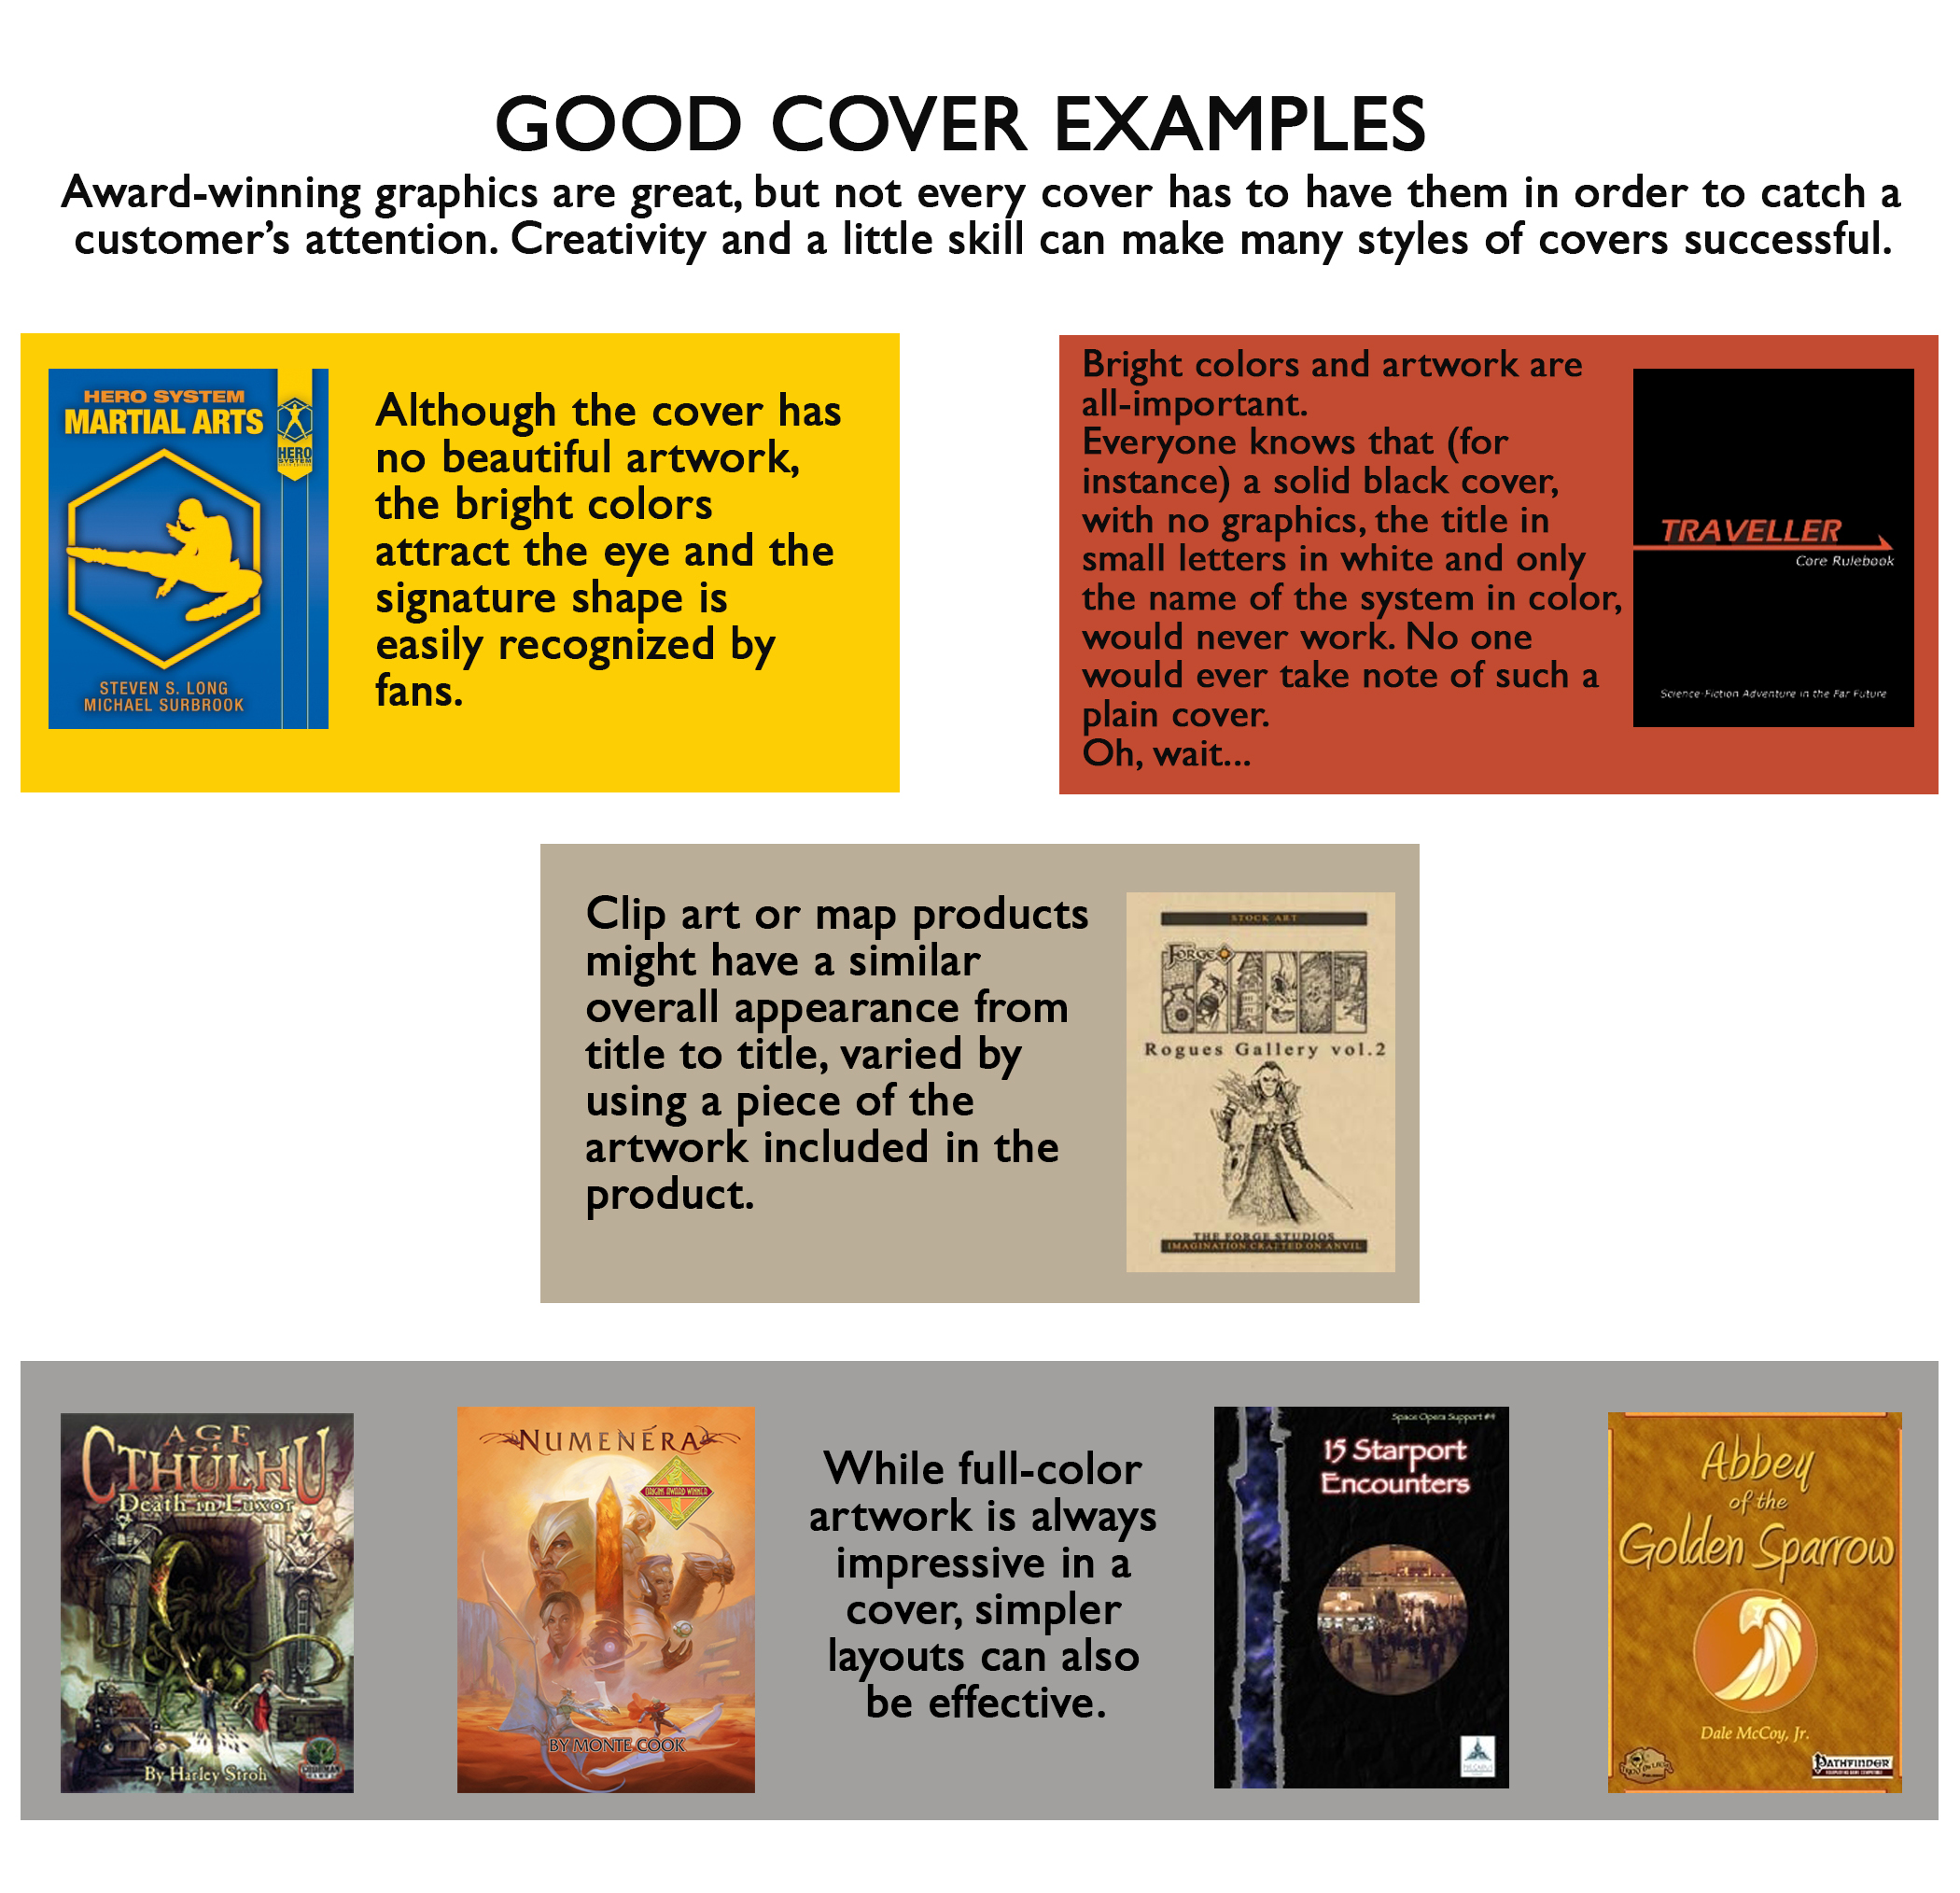 Good Cover Examples